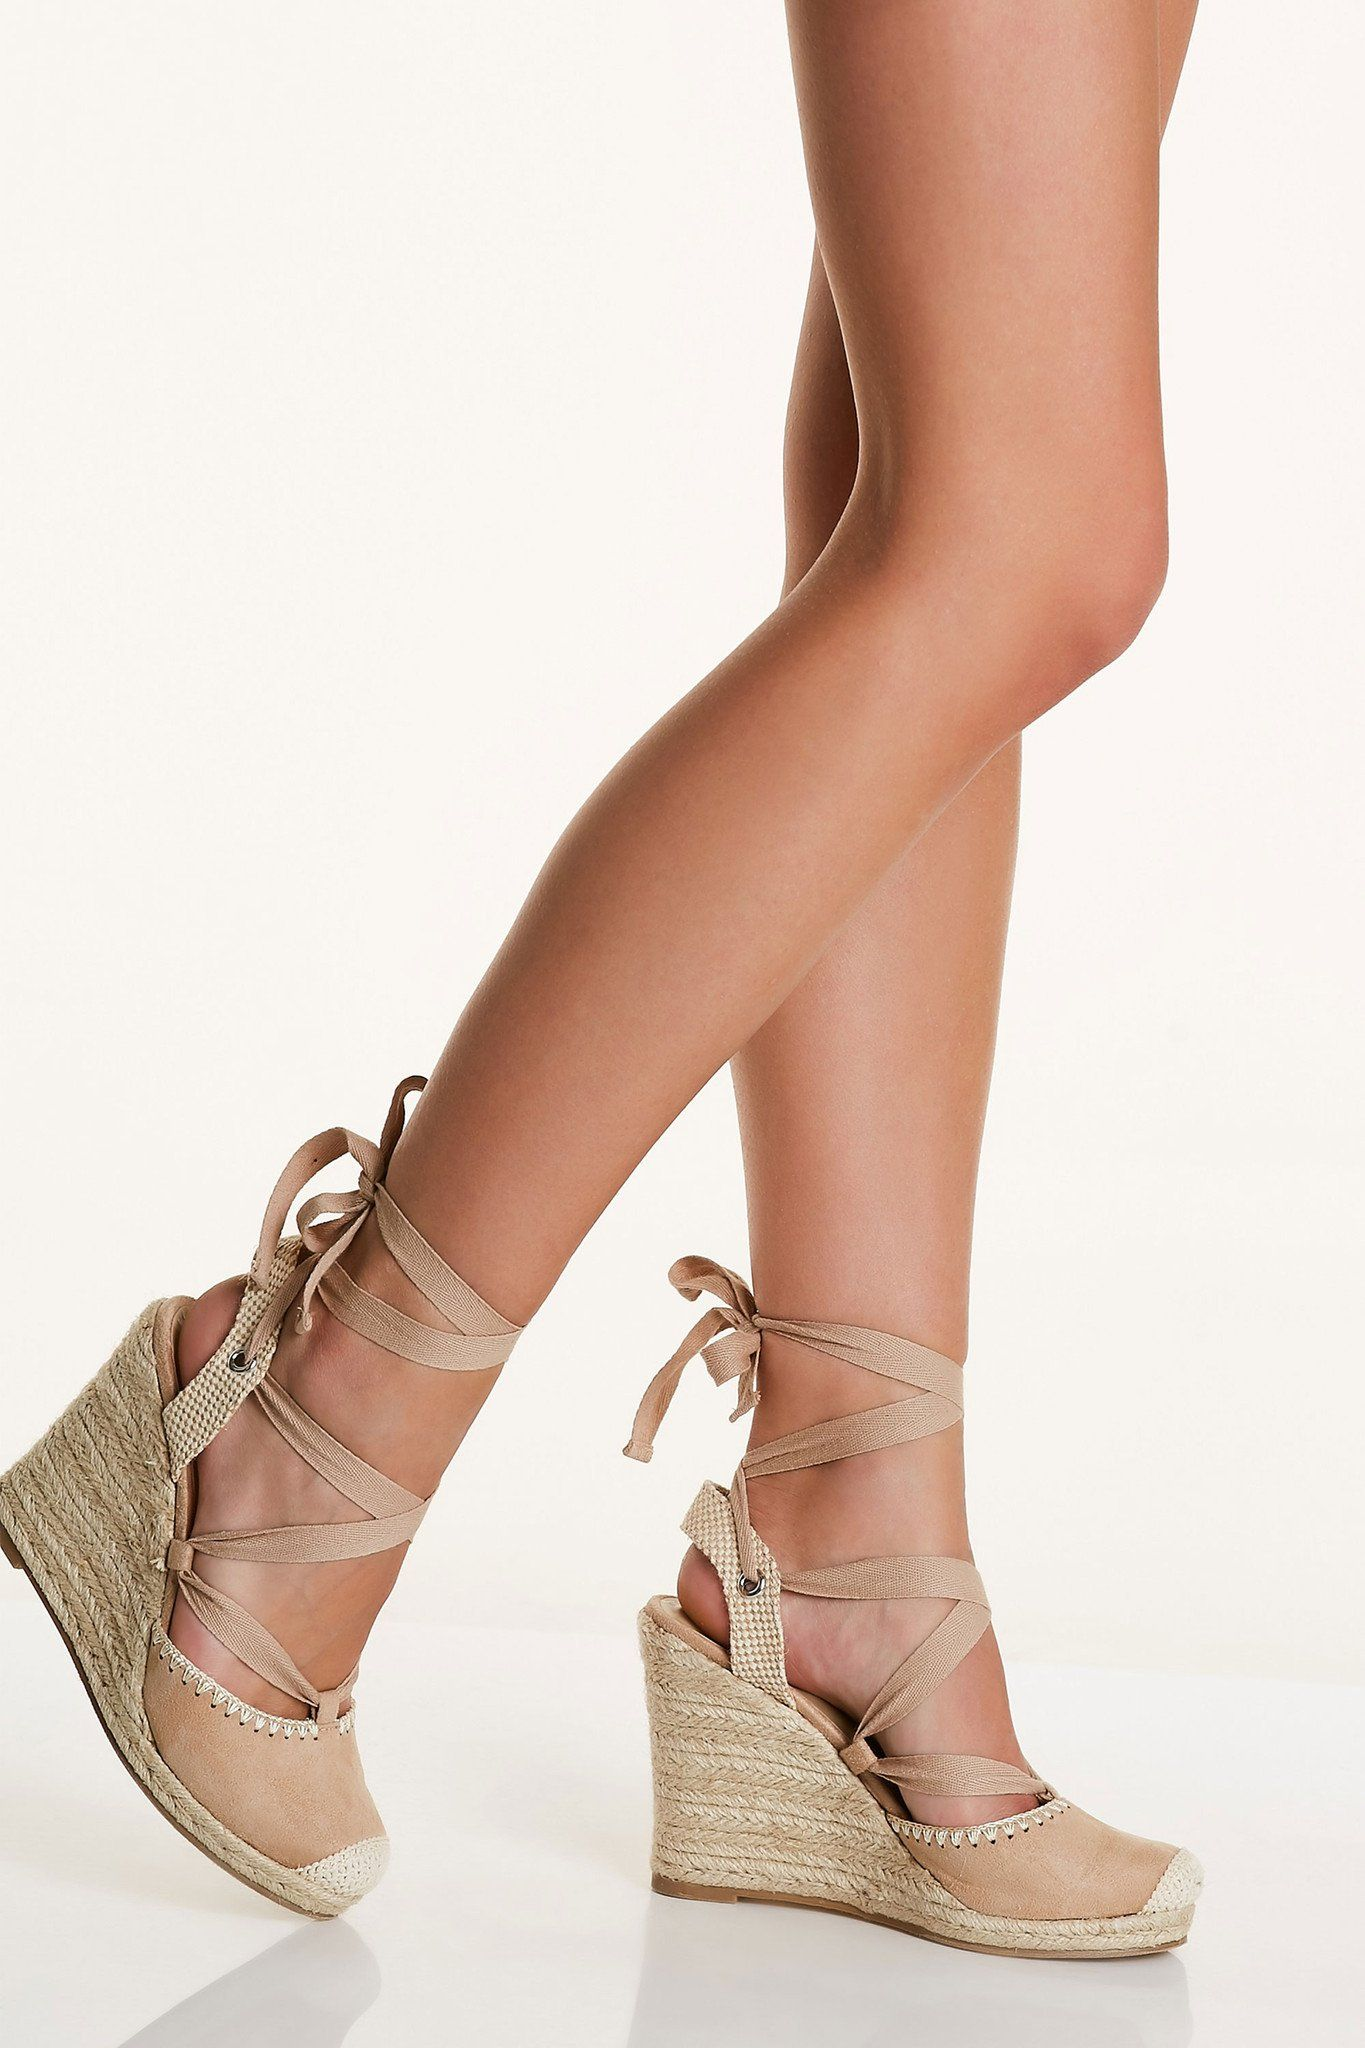 6817c1ab4c62 Chic espadrille wedges with soft suede finish and comfortable back strap. Lace  up design with rounded toe finish.